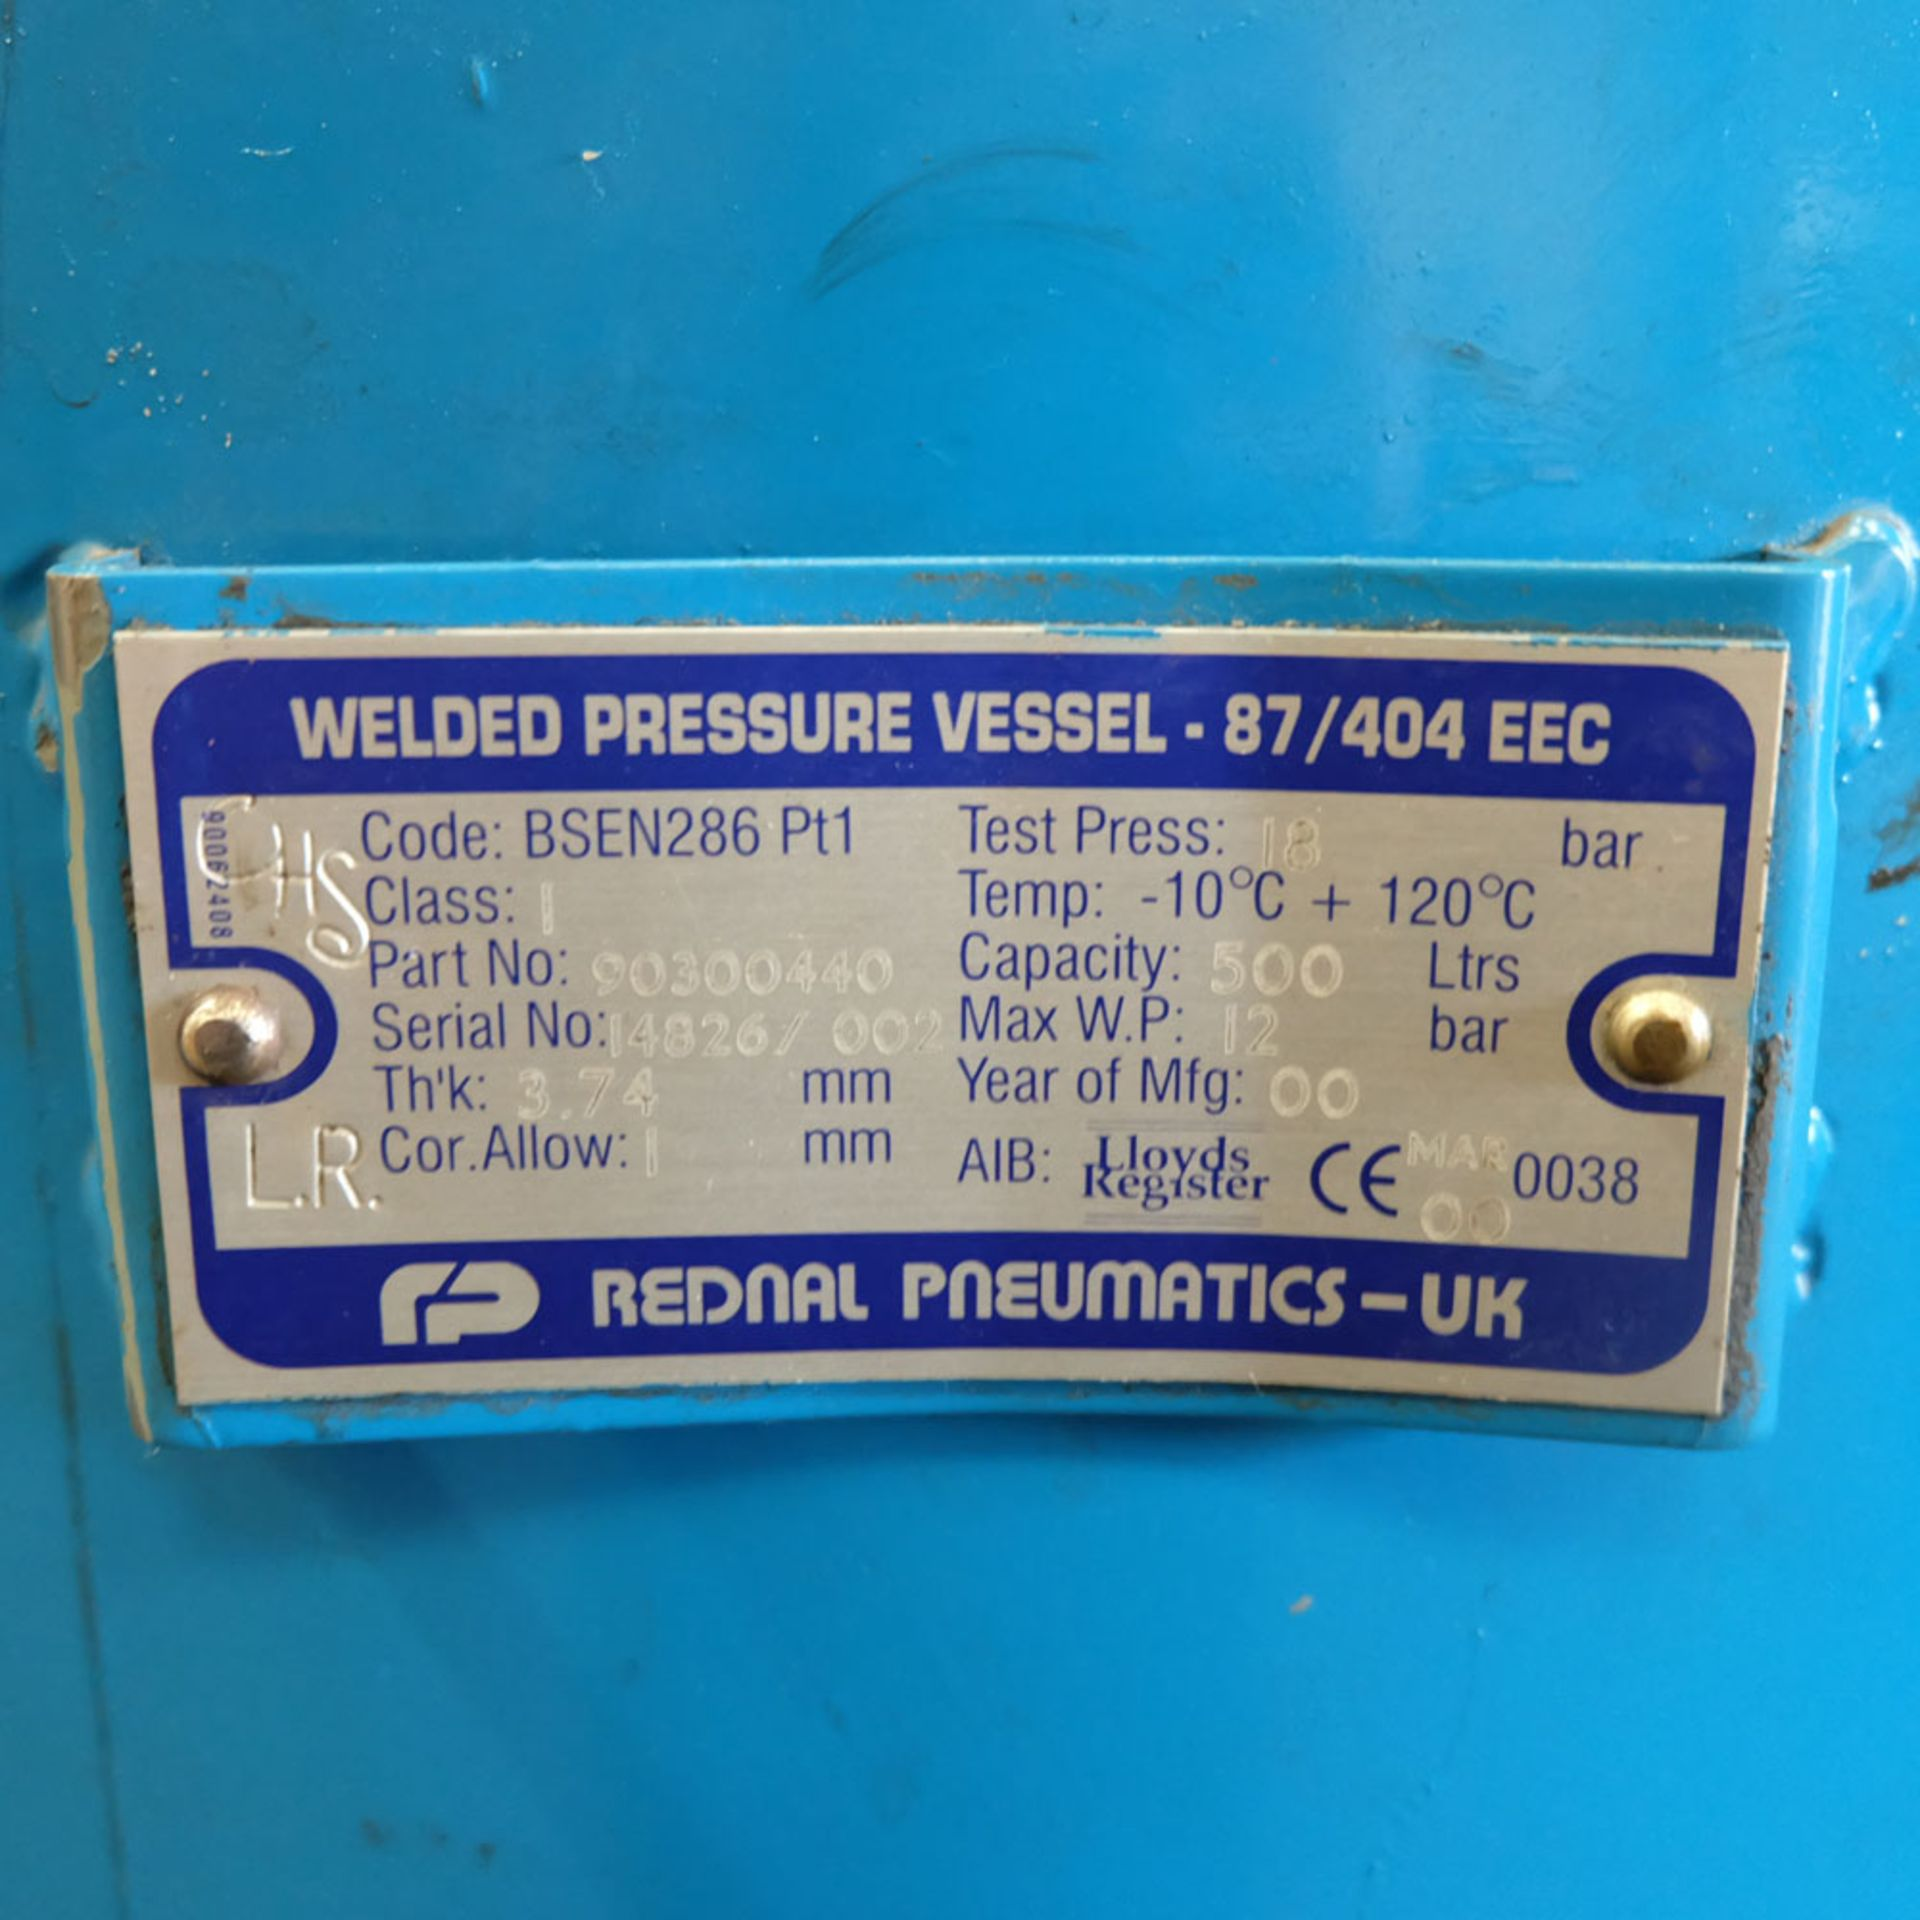 Power Systems PS15P - Rotary Air Compressor with 500L Receiver. Pressure 8 Bar. Capacity 80 cfm. - Image 8 of 8